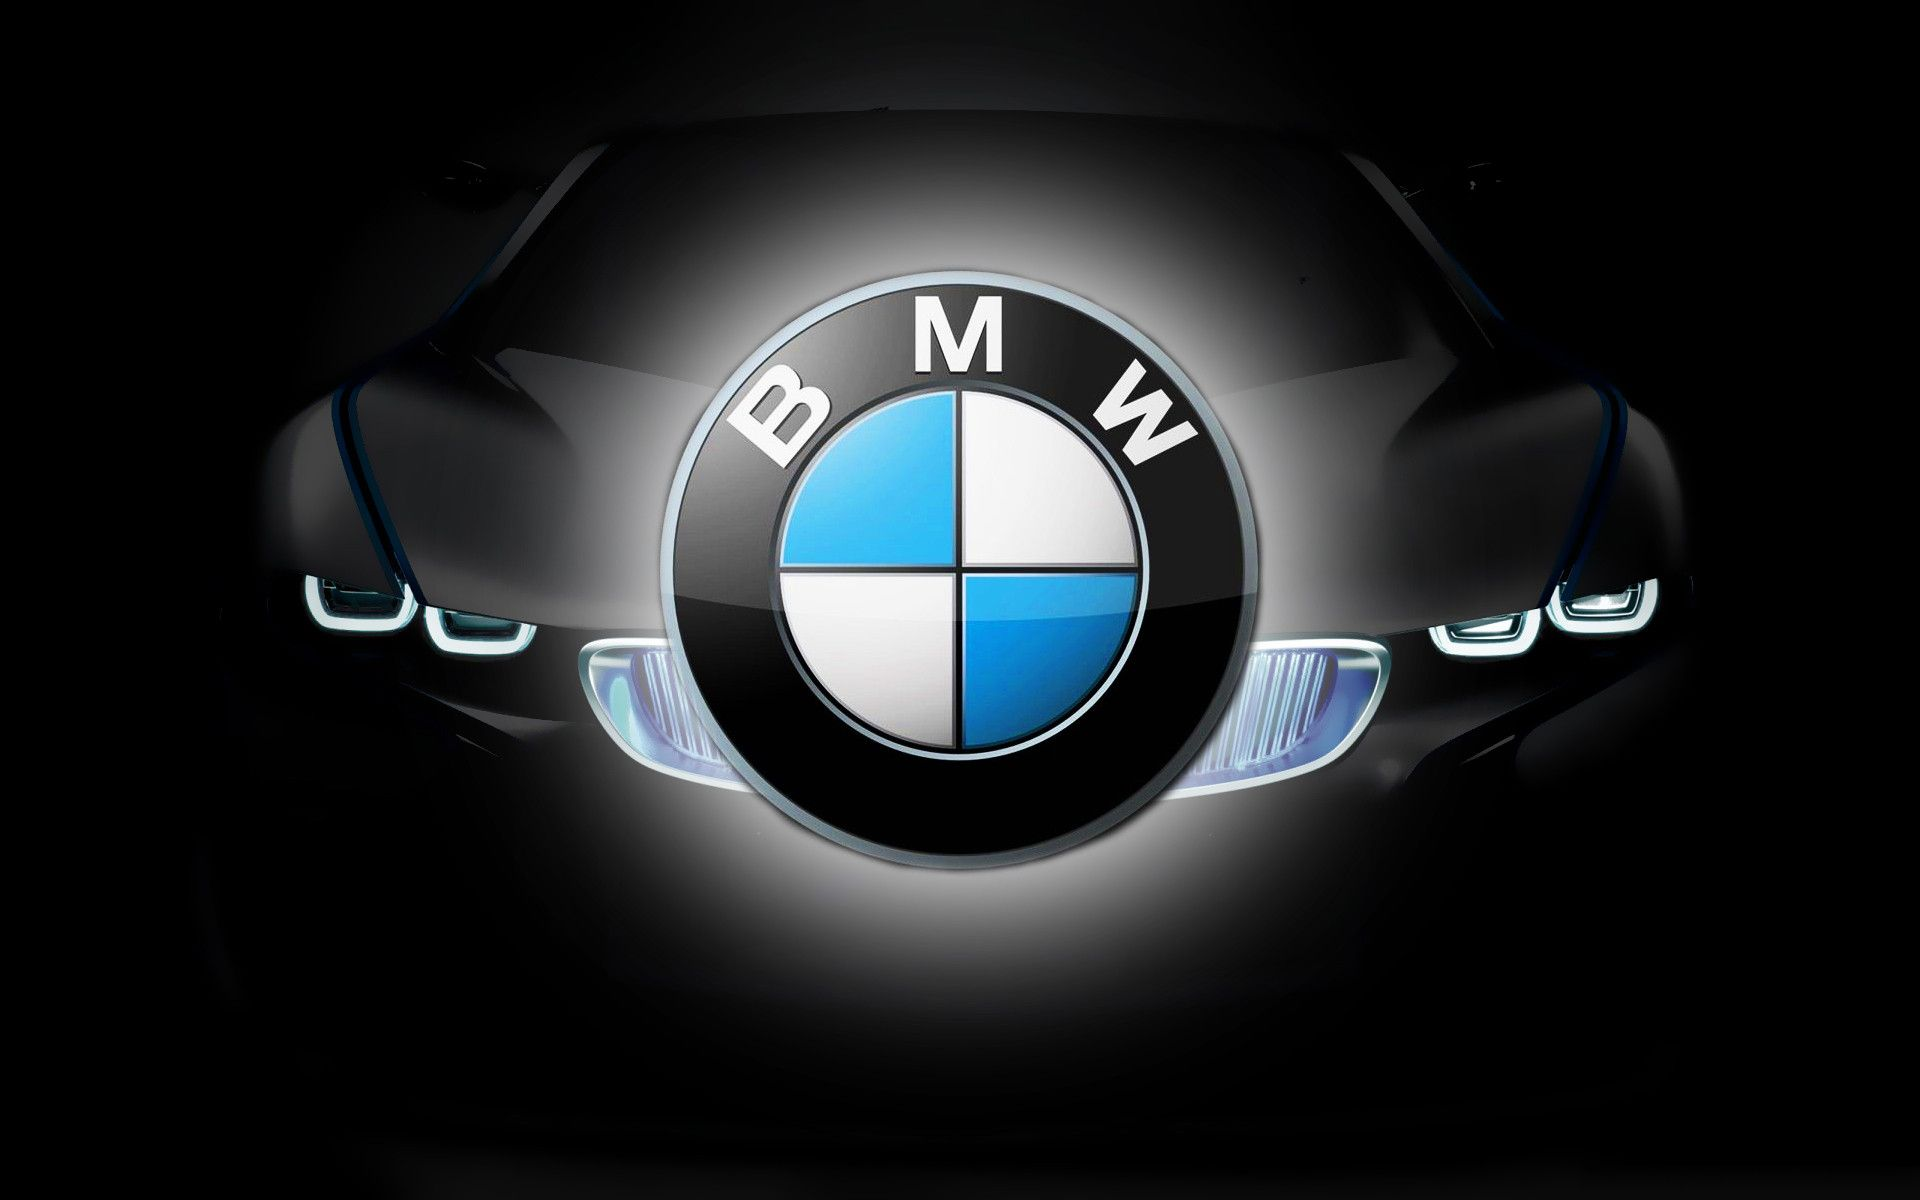 Abu Dhabi BMW for Sale New and Used by car dealers and individuals